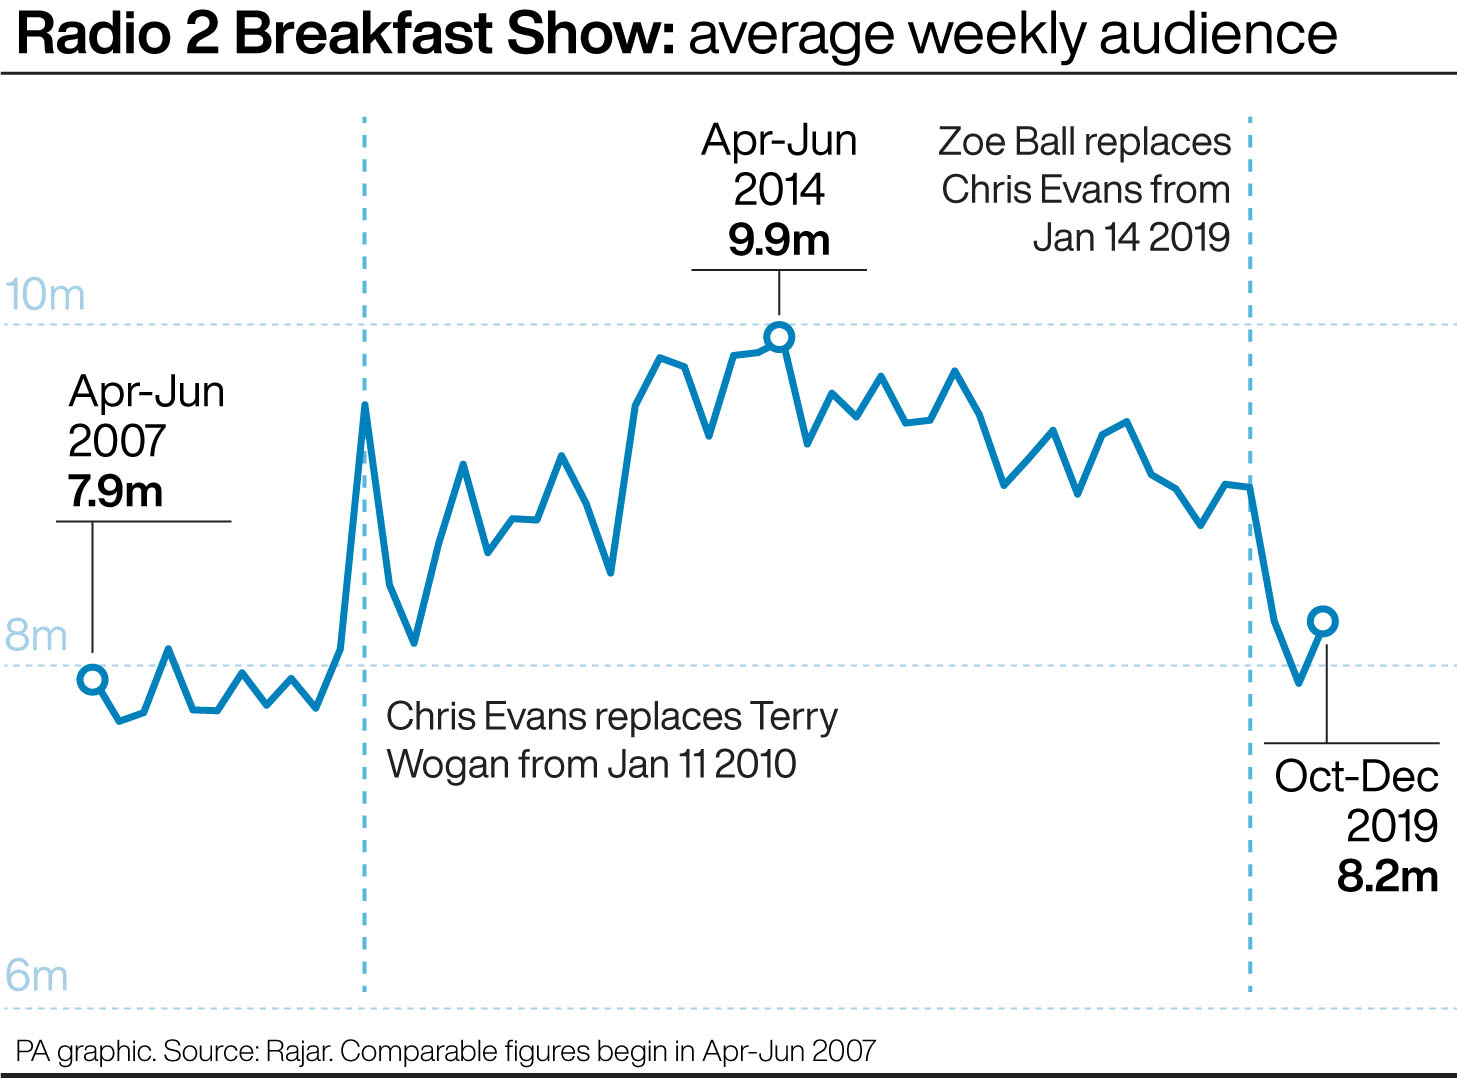 Radio 2 Breakfast Show: average weekly audience